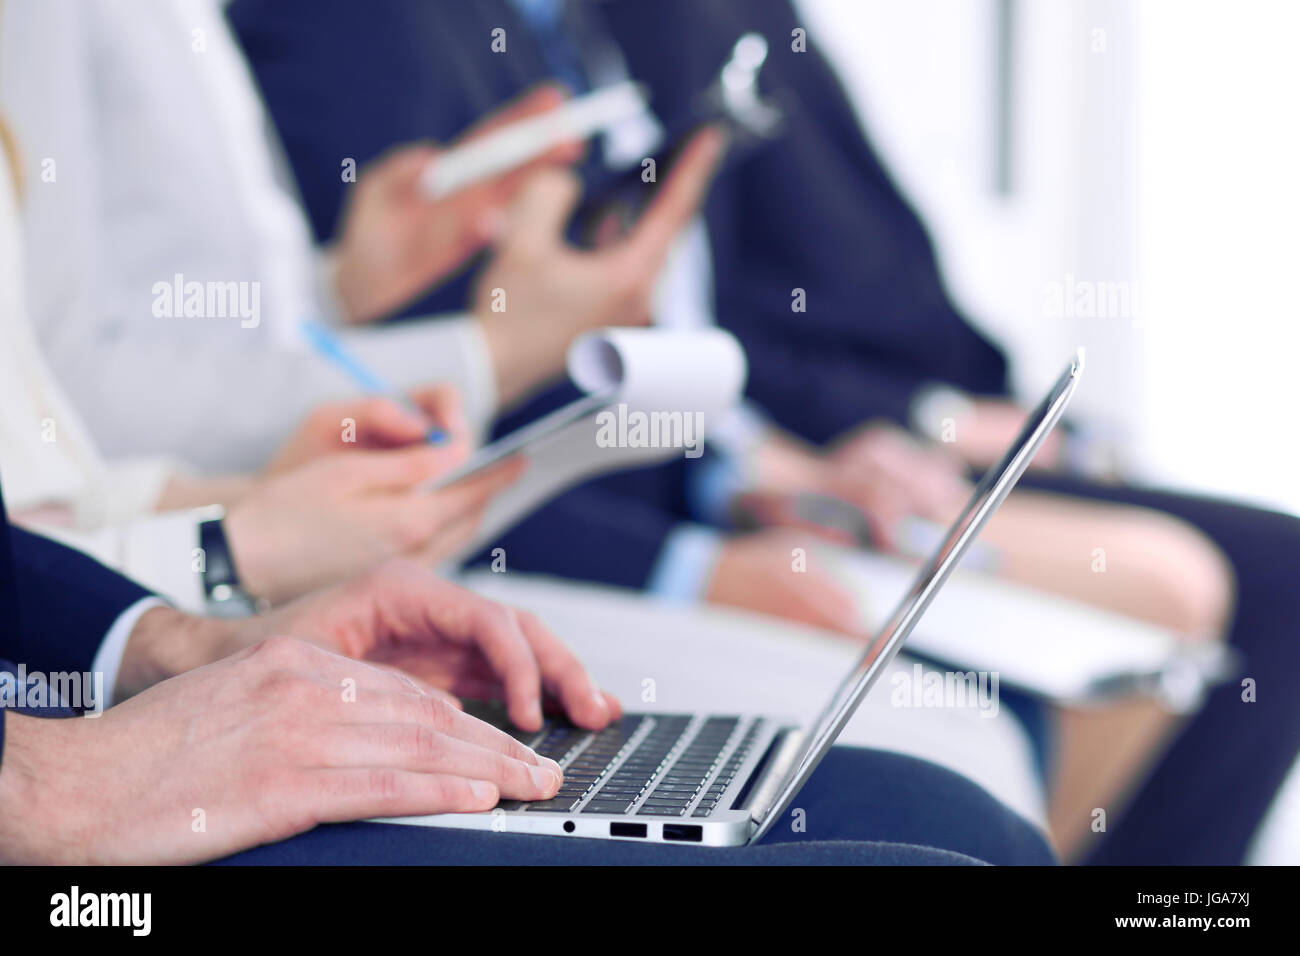 Close-up of business man hands typing on laptop computer at the conference - Stock Image